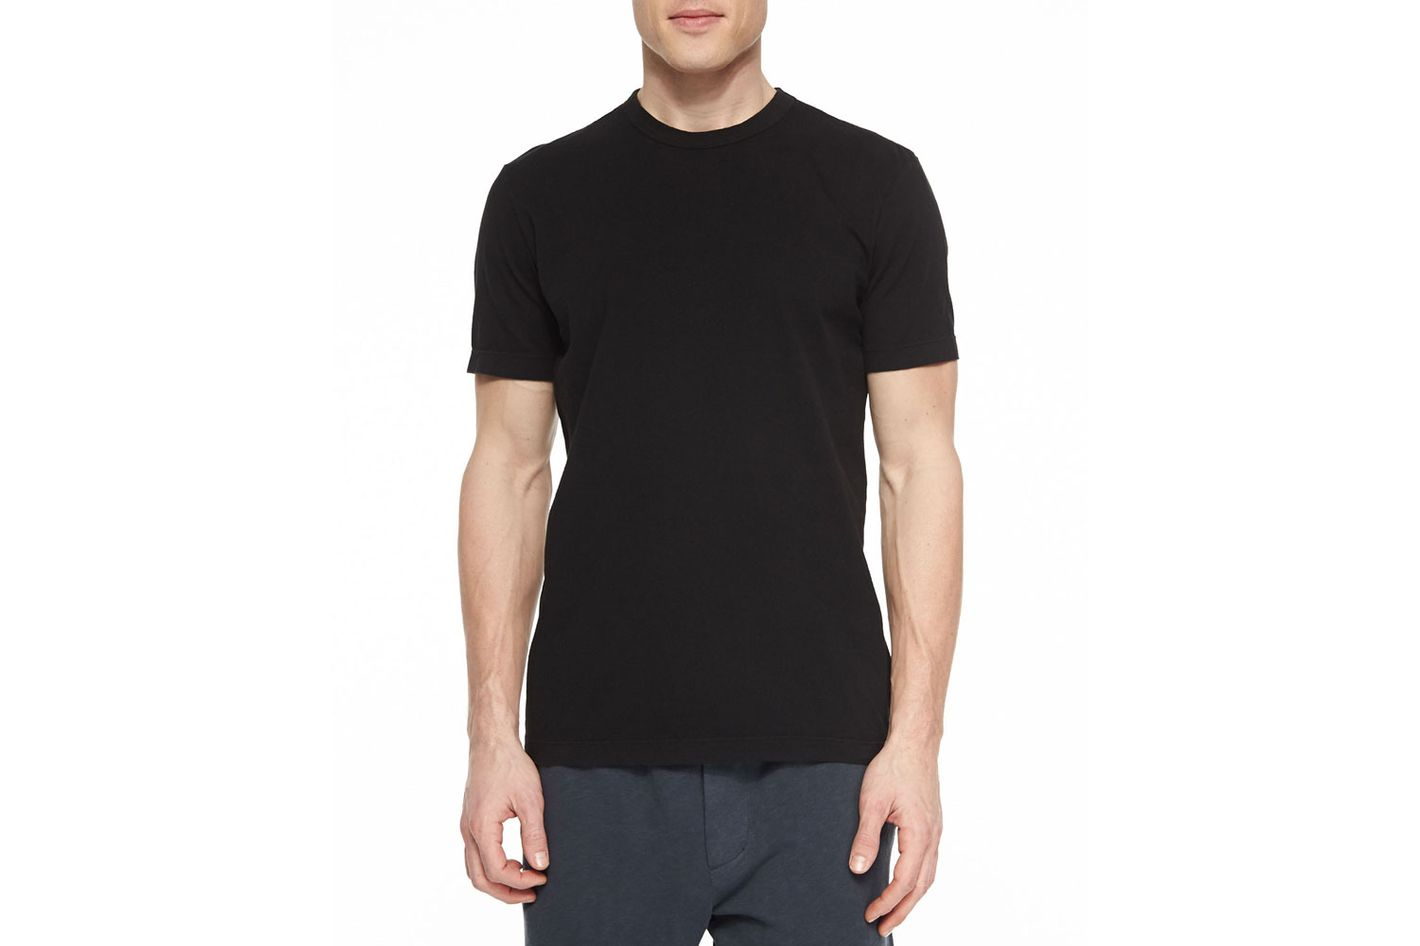 Find great deals on eBay for black t shirts. Shop with confidence.